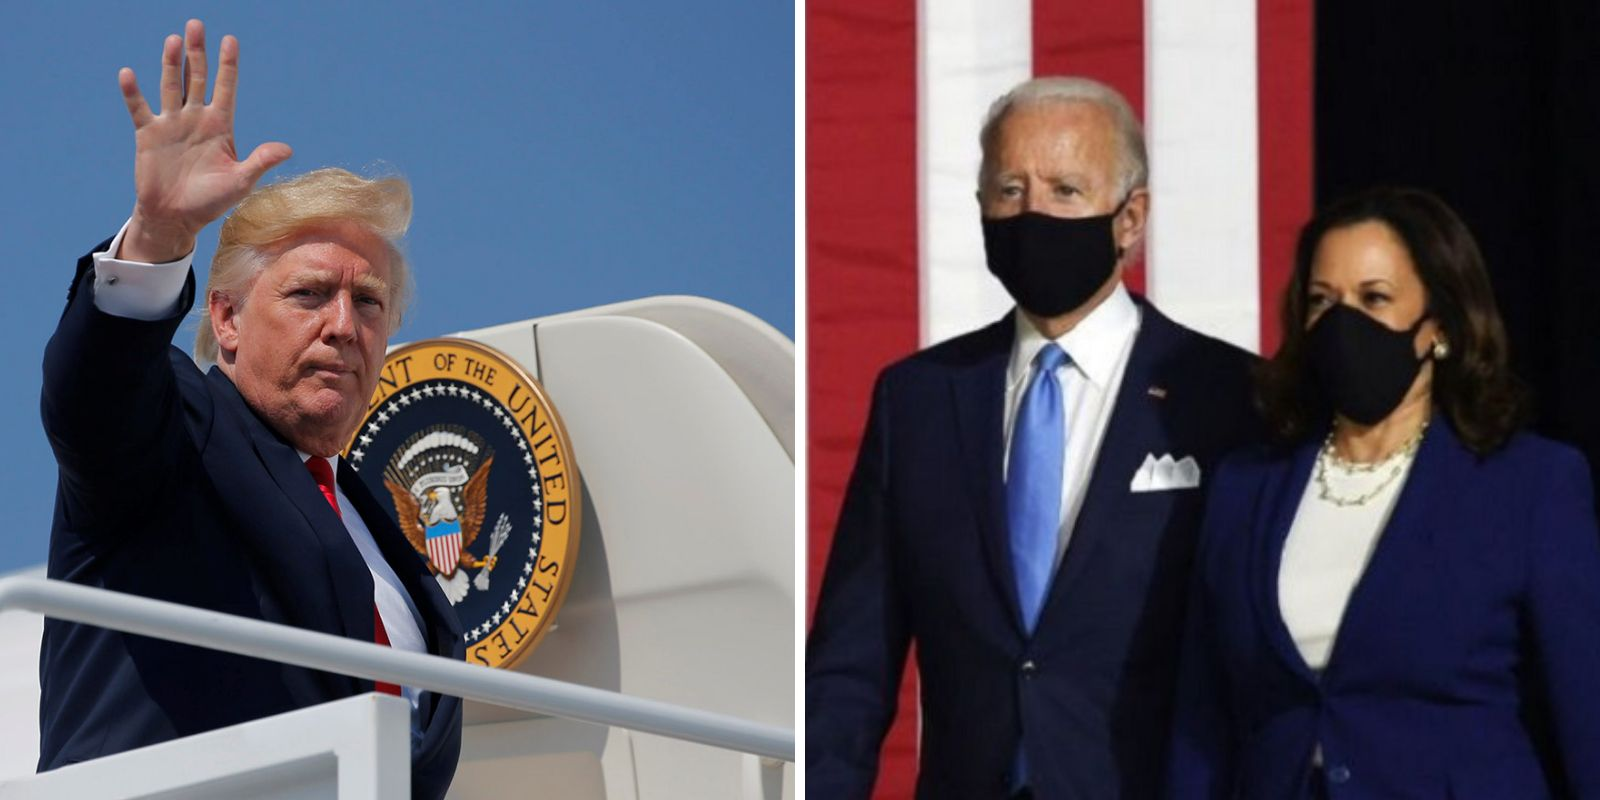 Joe Biden and his supporters want us to live in perpetual crisis